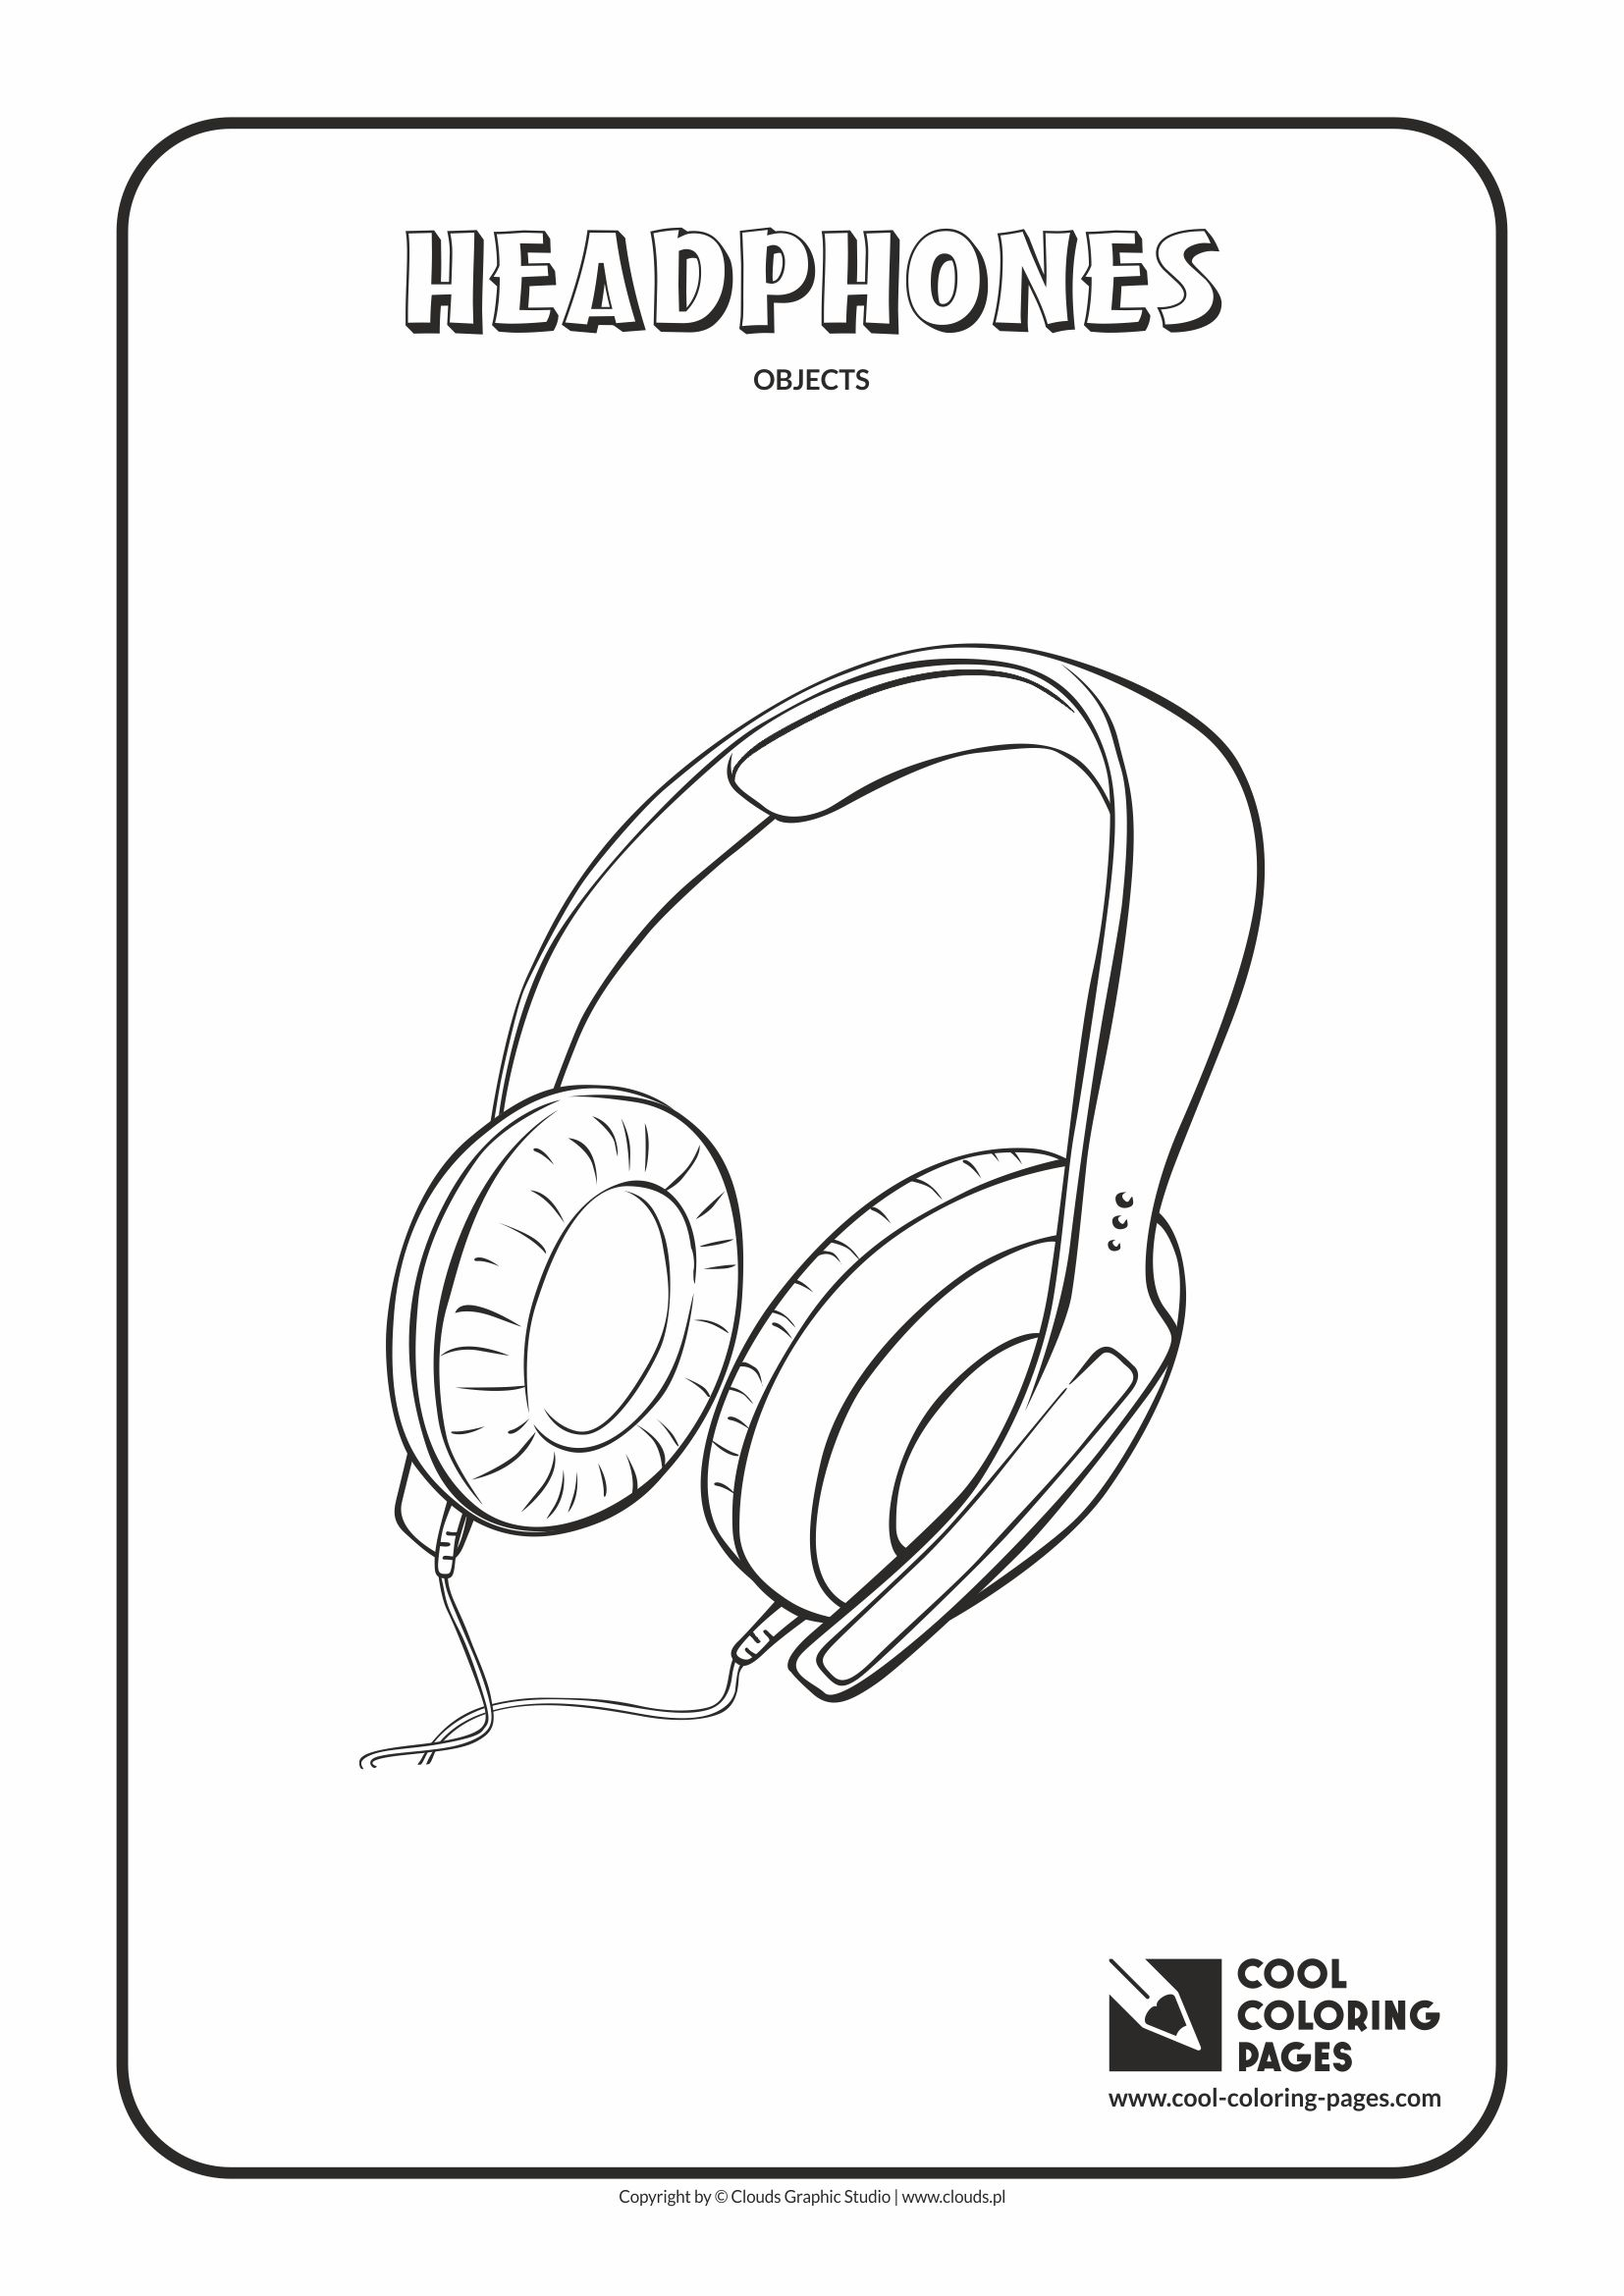 Cool Coloring Pages - Coloring objects / Headphones